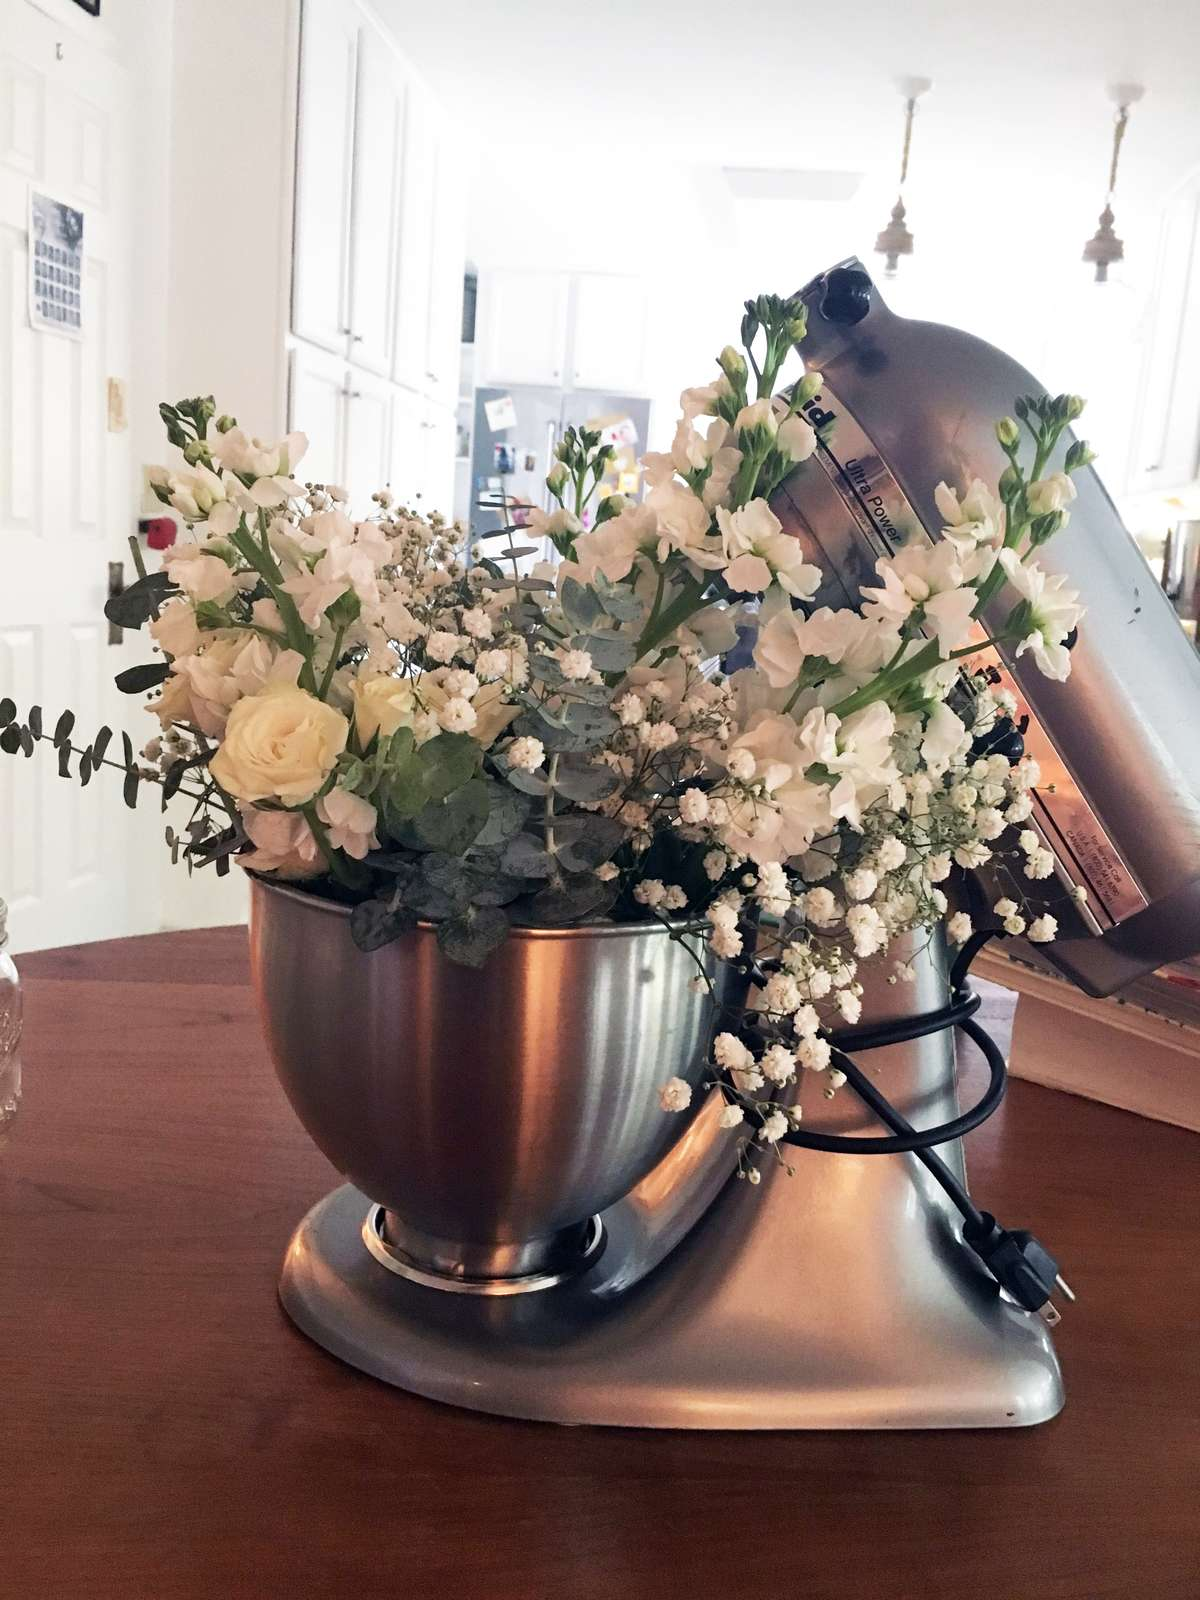 bridal shower flower centerpieces in Kitchenaid mixers